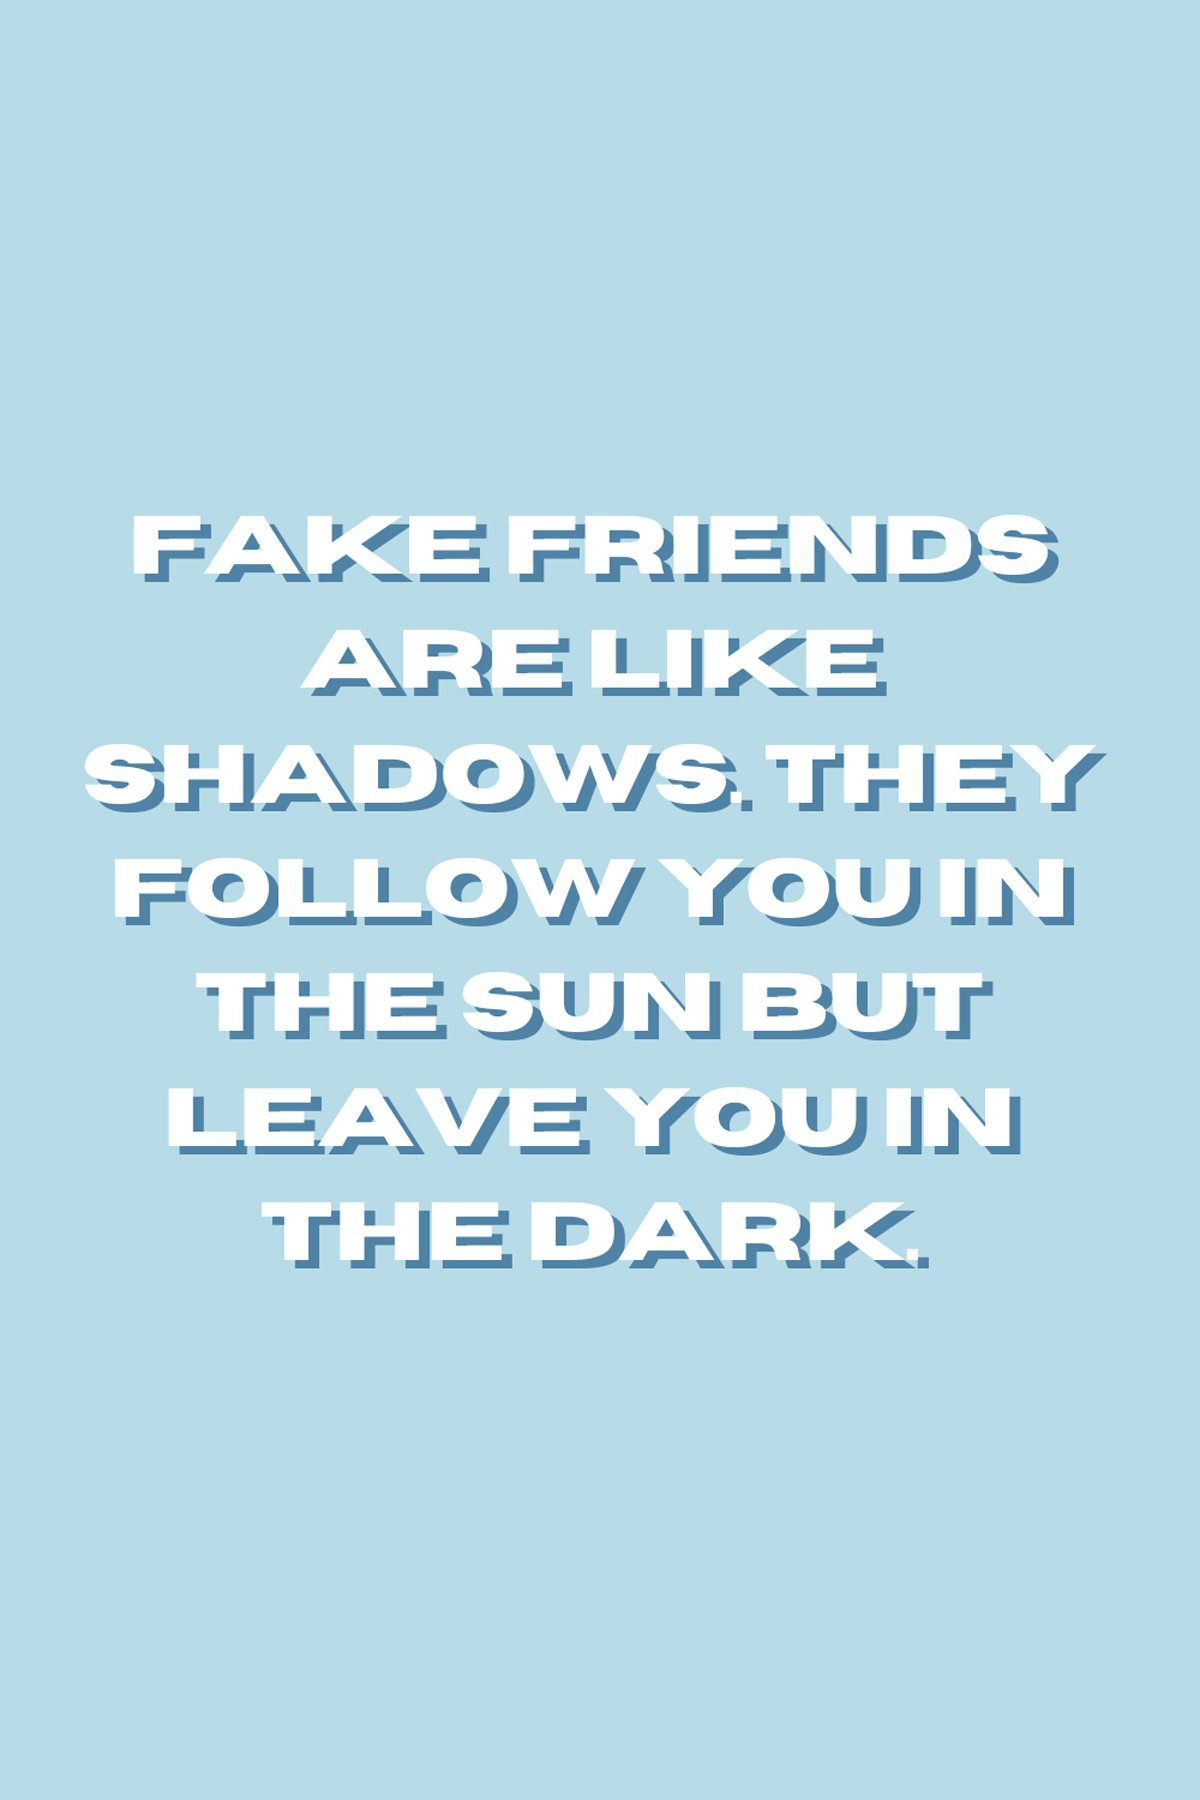 Why You Should Not Fake Friends Quotes